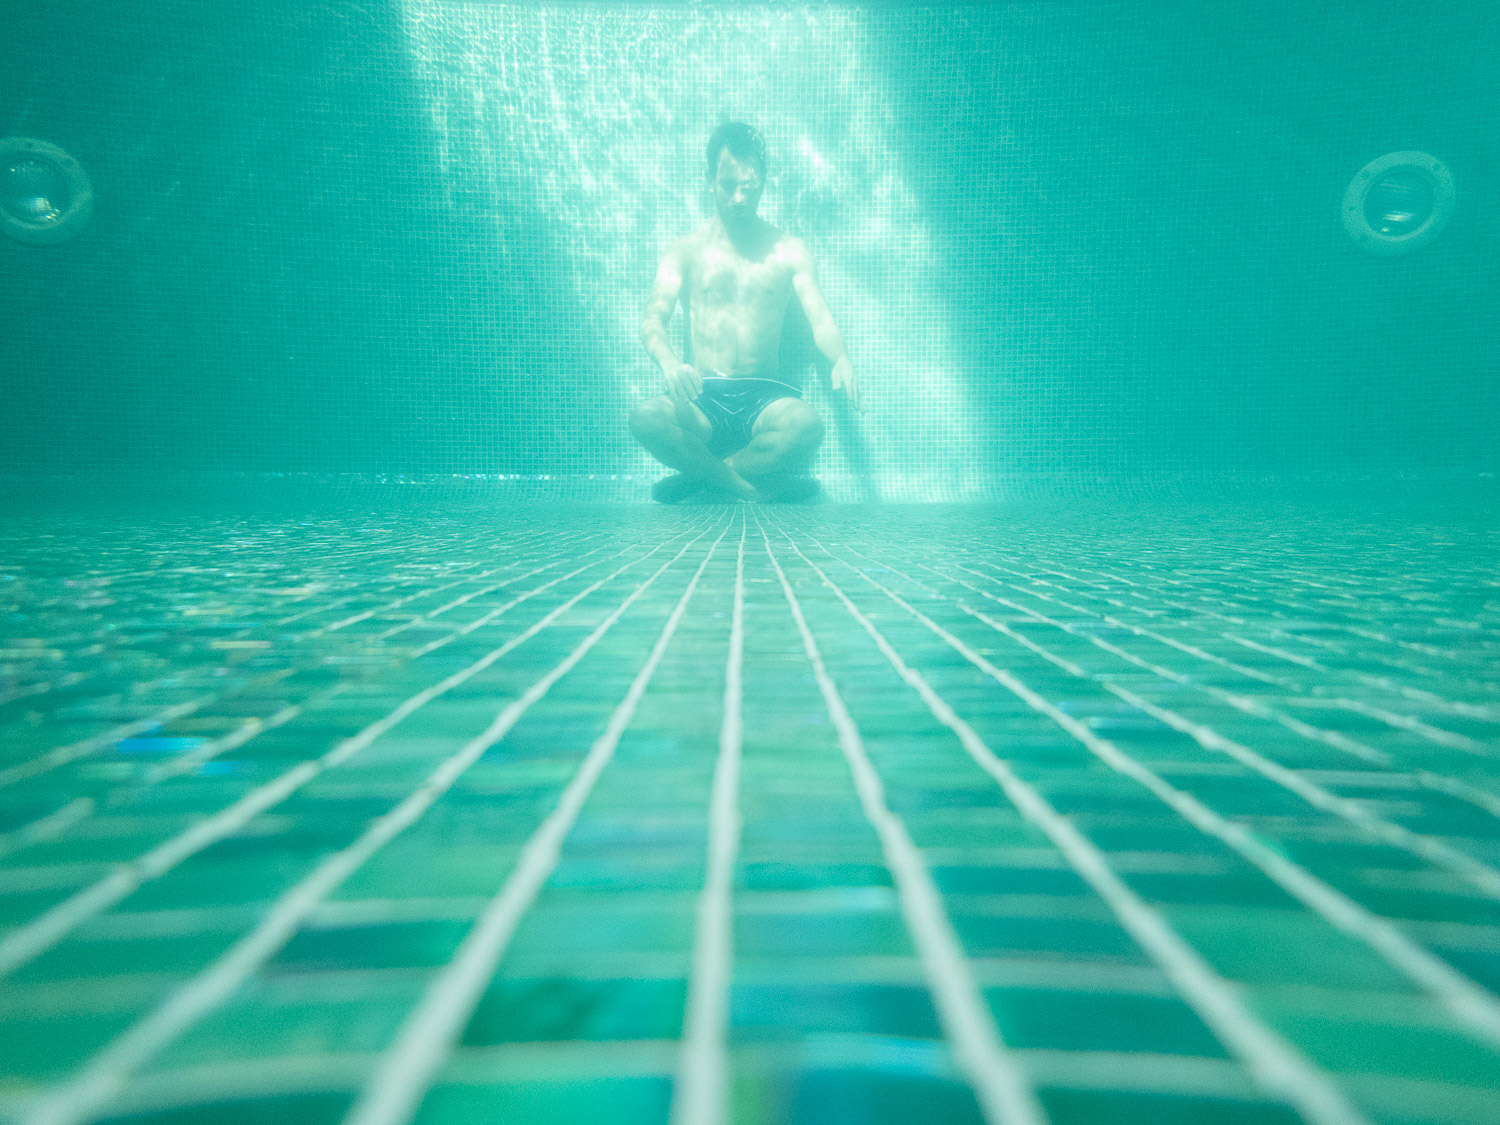 Underwater-Pool-Test-Reject-Photography-Turquoise-RAW-7.jpg